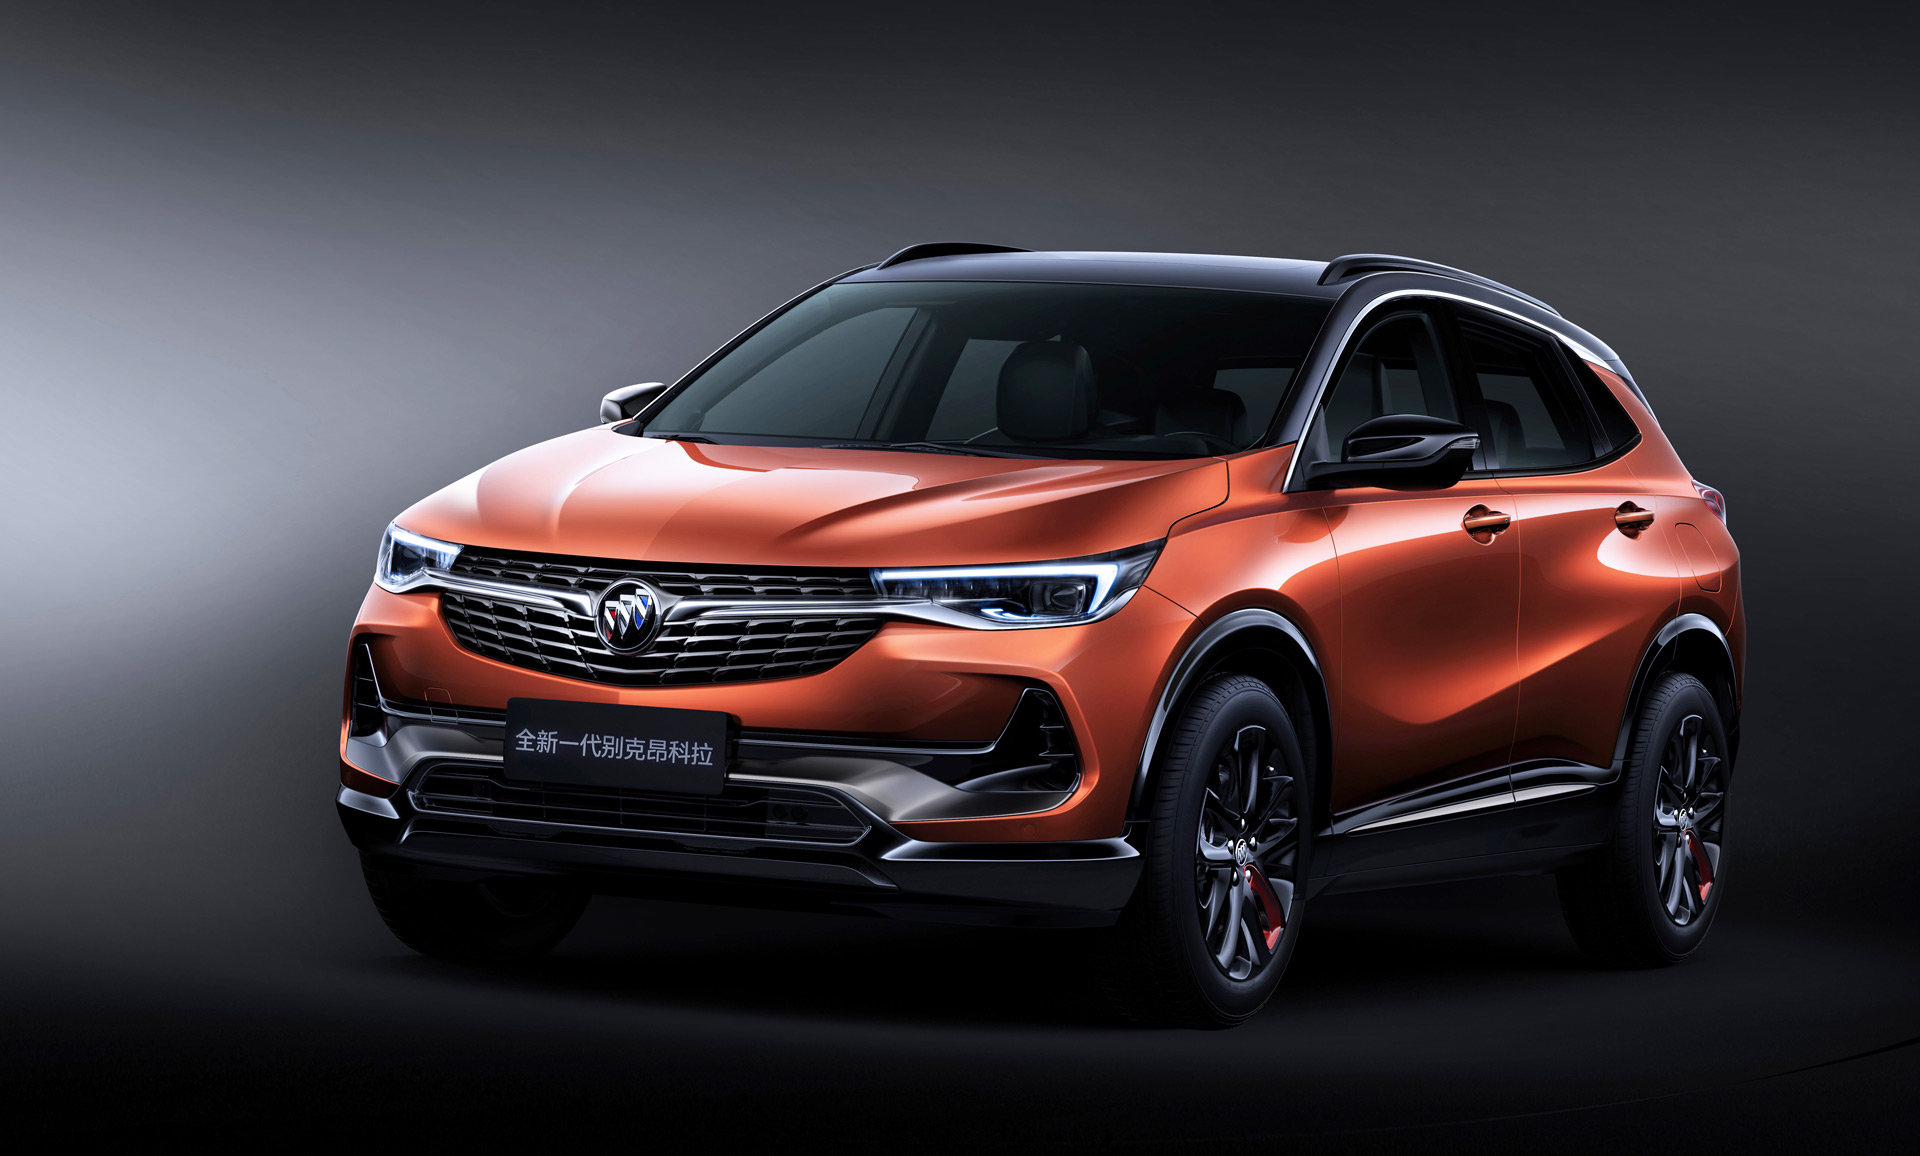 New Buick 2020 2020 Buick Encore revealed at 2019 Shanghai auto show